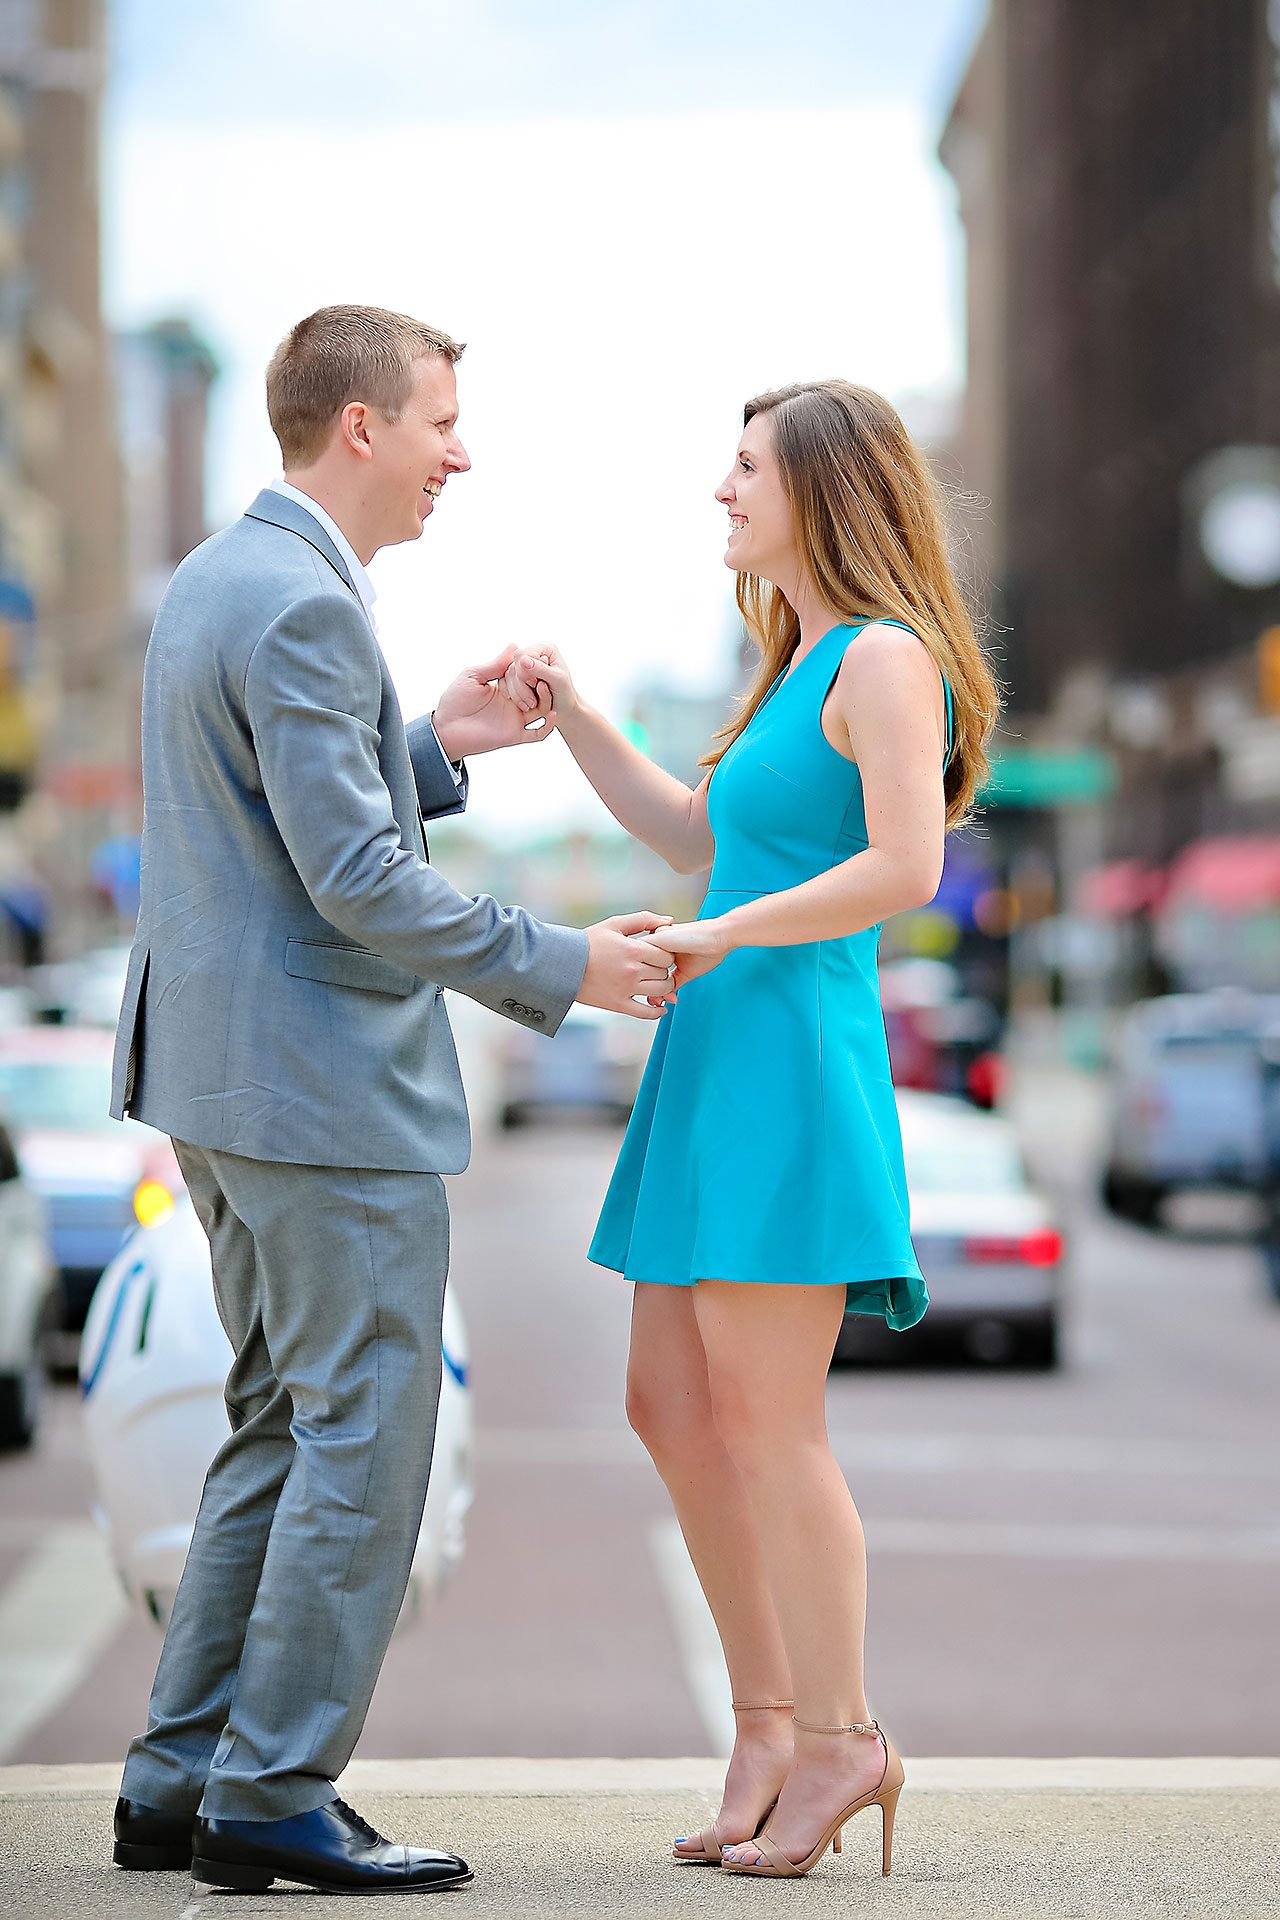 Chelsea Jeff Downtown Indy Engagement Session 091